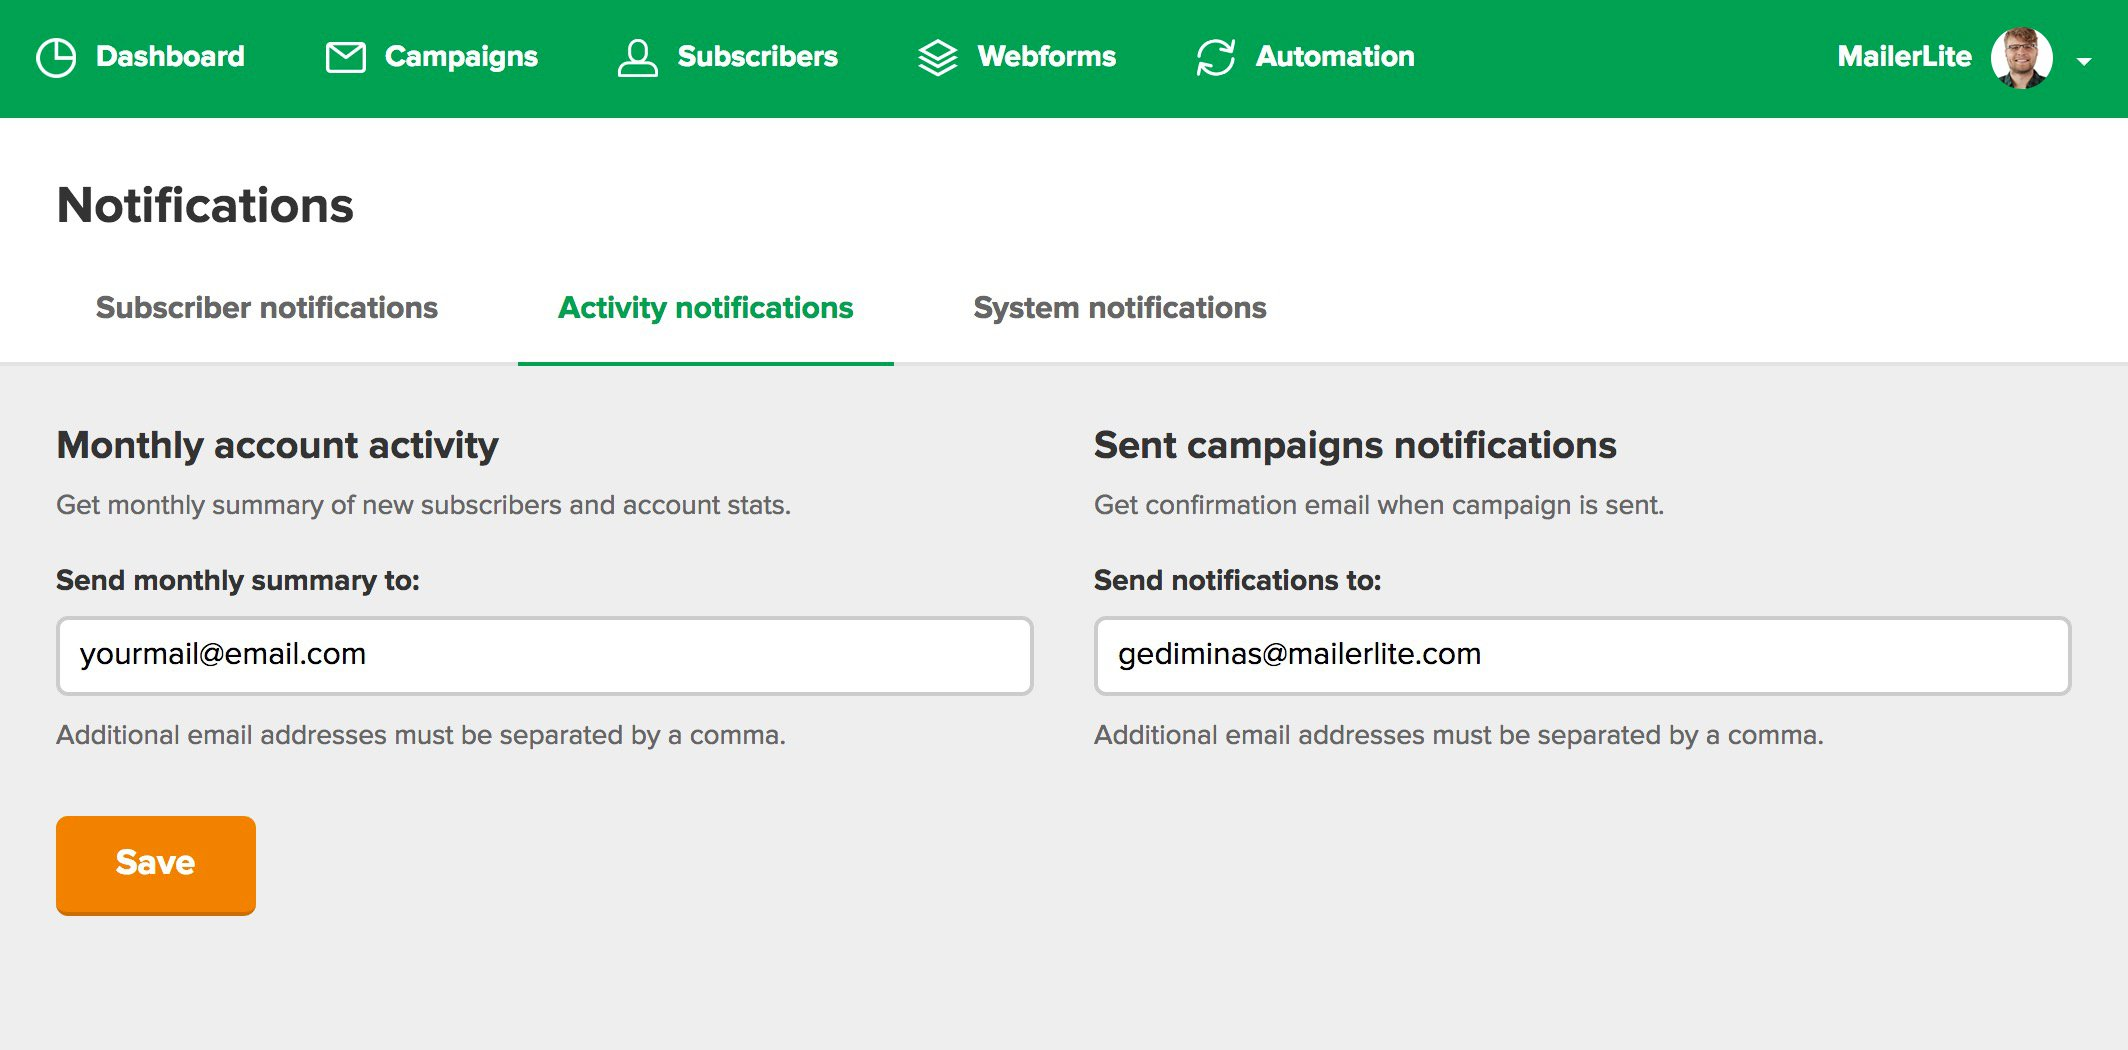 Get a notification after your campaign is sent